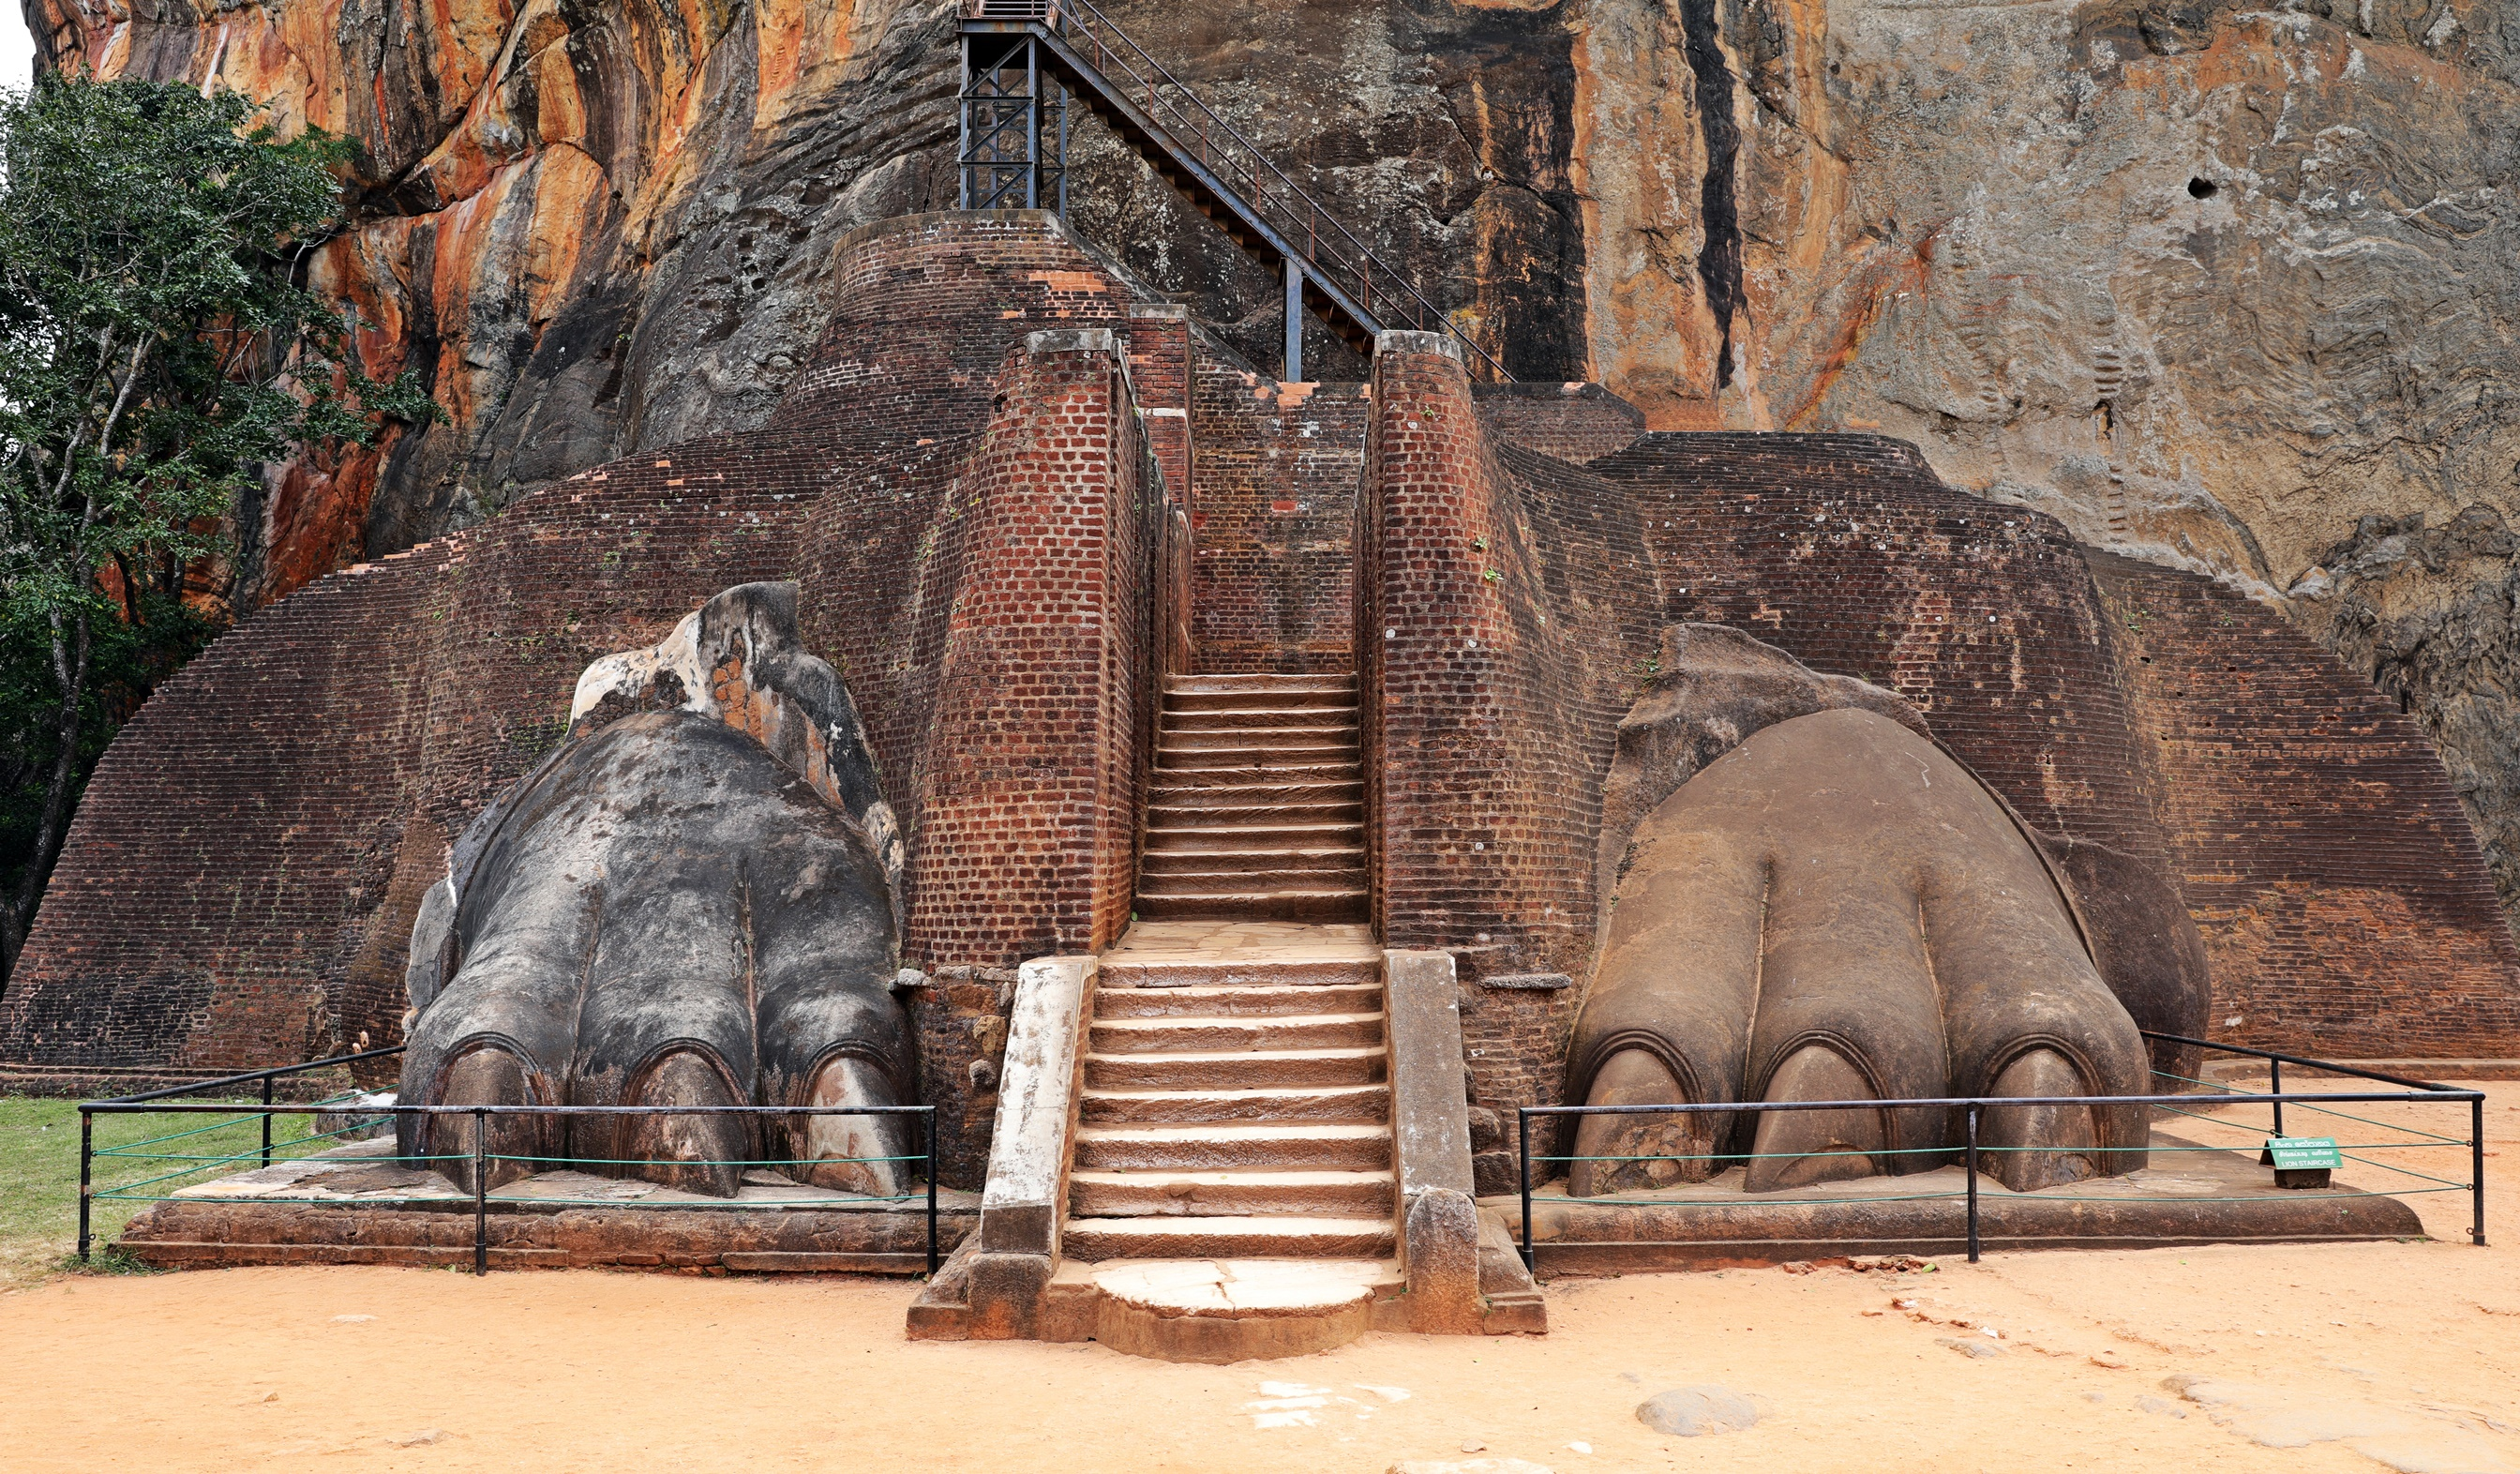 Lion's Paws, Sigiriya Rock